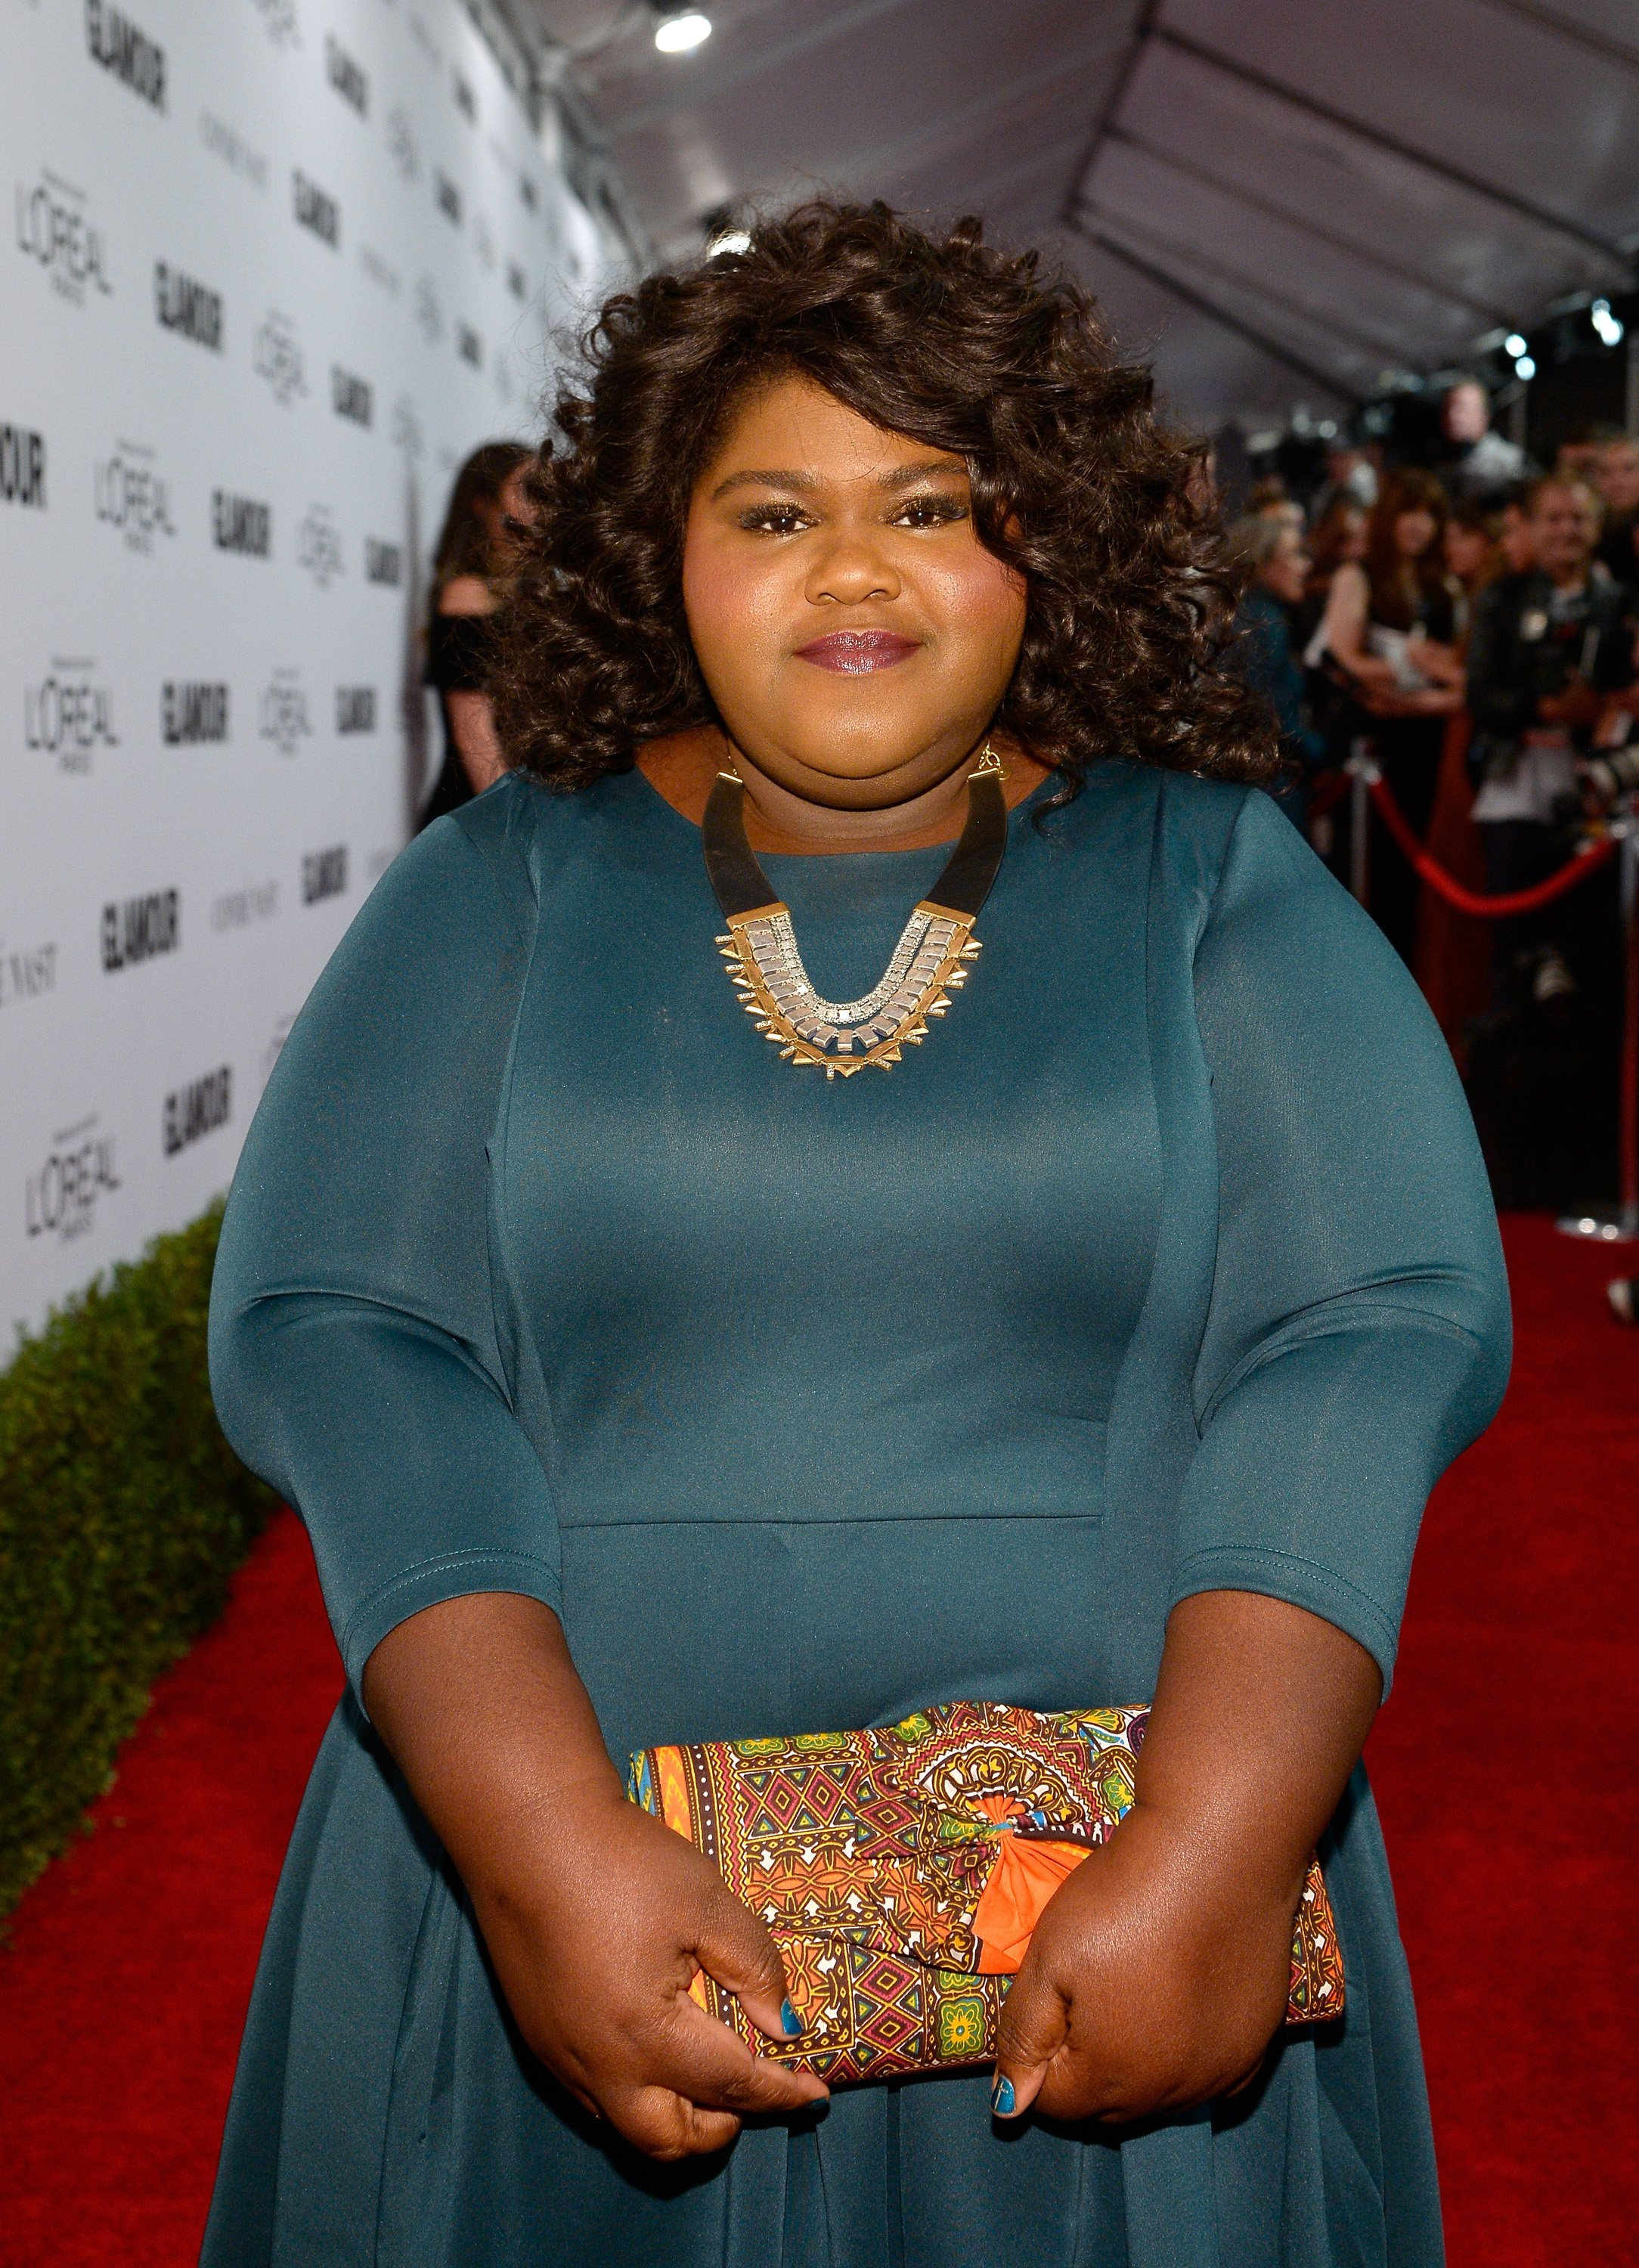 Gabourey Sidibe attends Glamour Women Of The Year on Nov. 14, 2016 in California | Photo: Getty Images